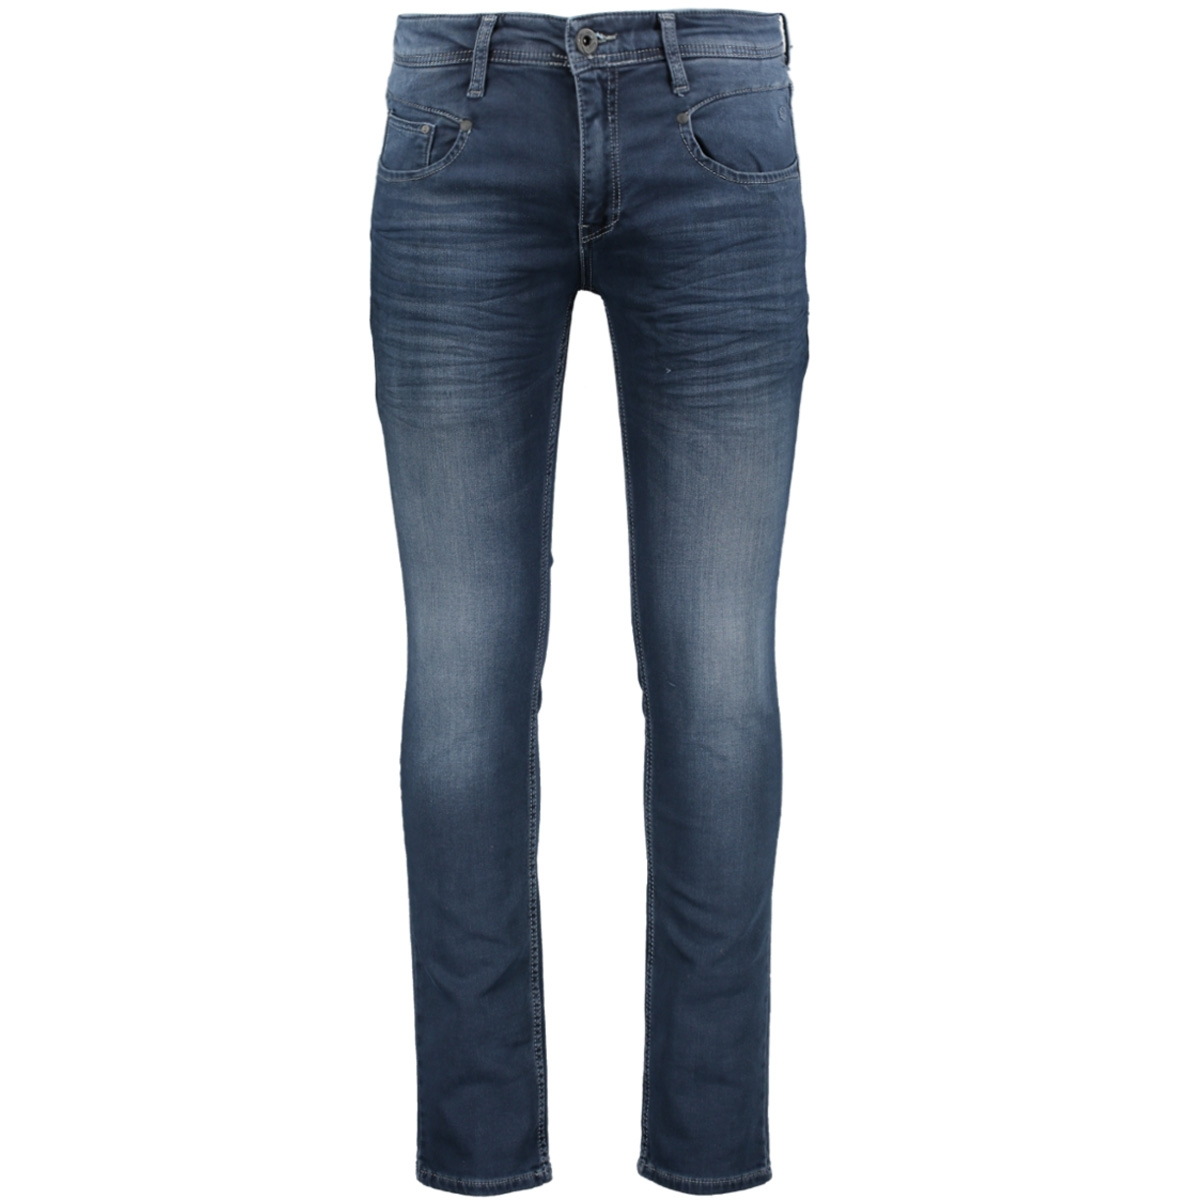 82542 gabbiano jeans montisi